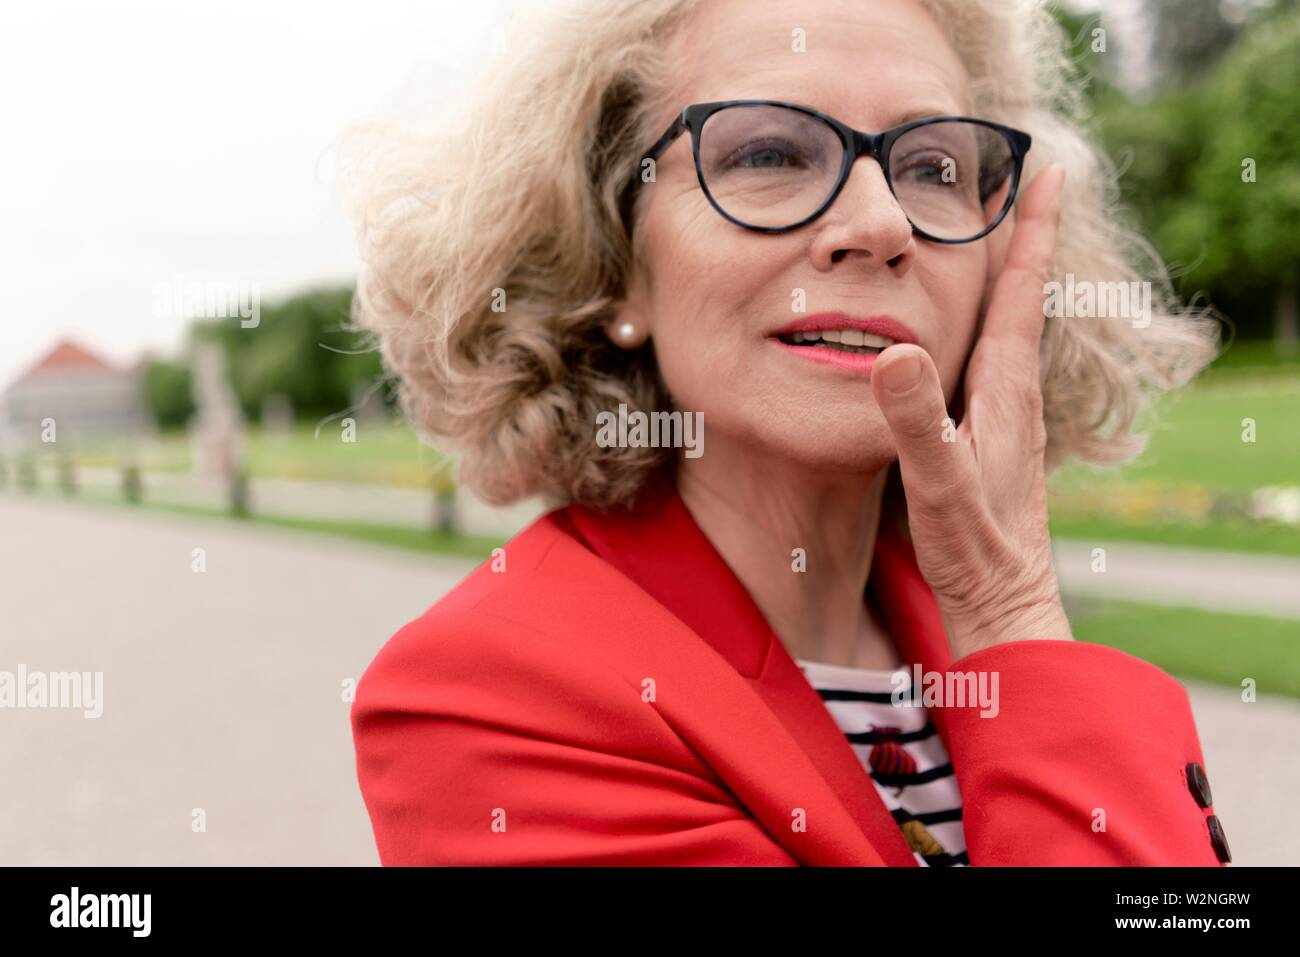 senior woman (67 years old) touching her head in park, in Nymphenburg, Munich, Germany. - Stock Image